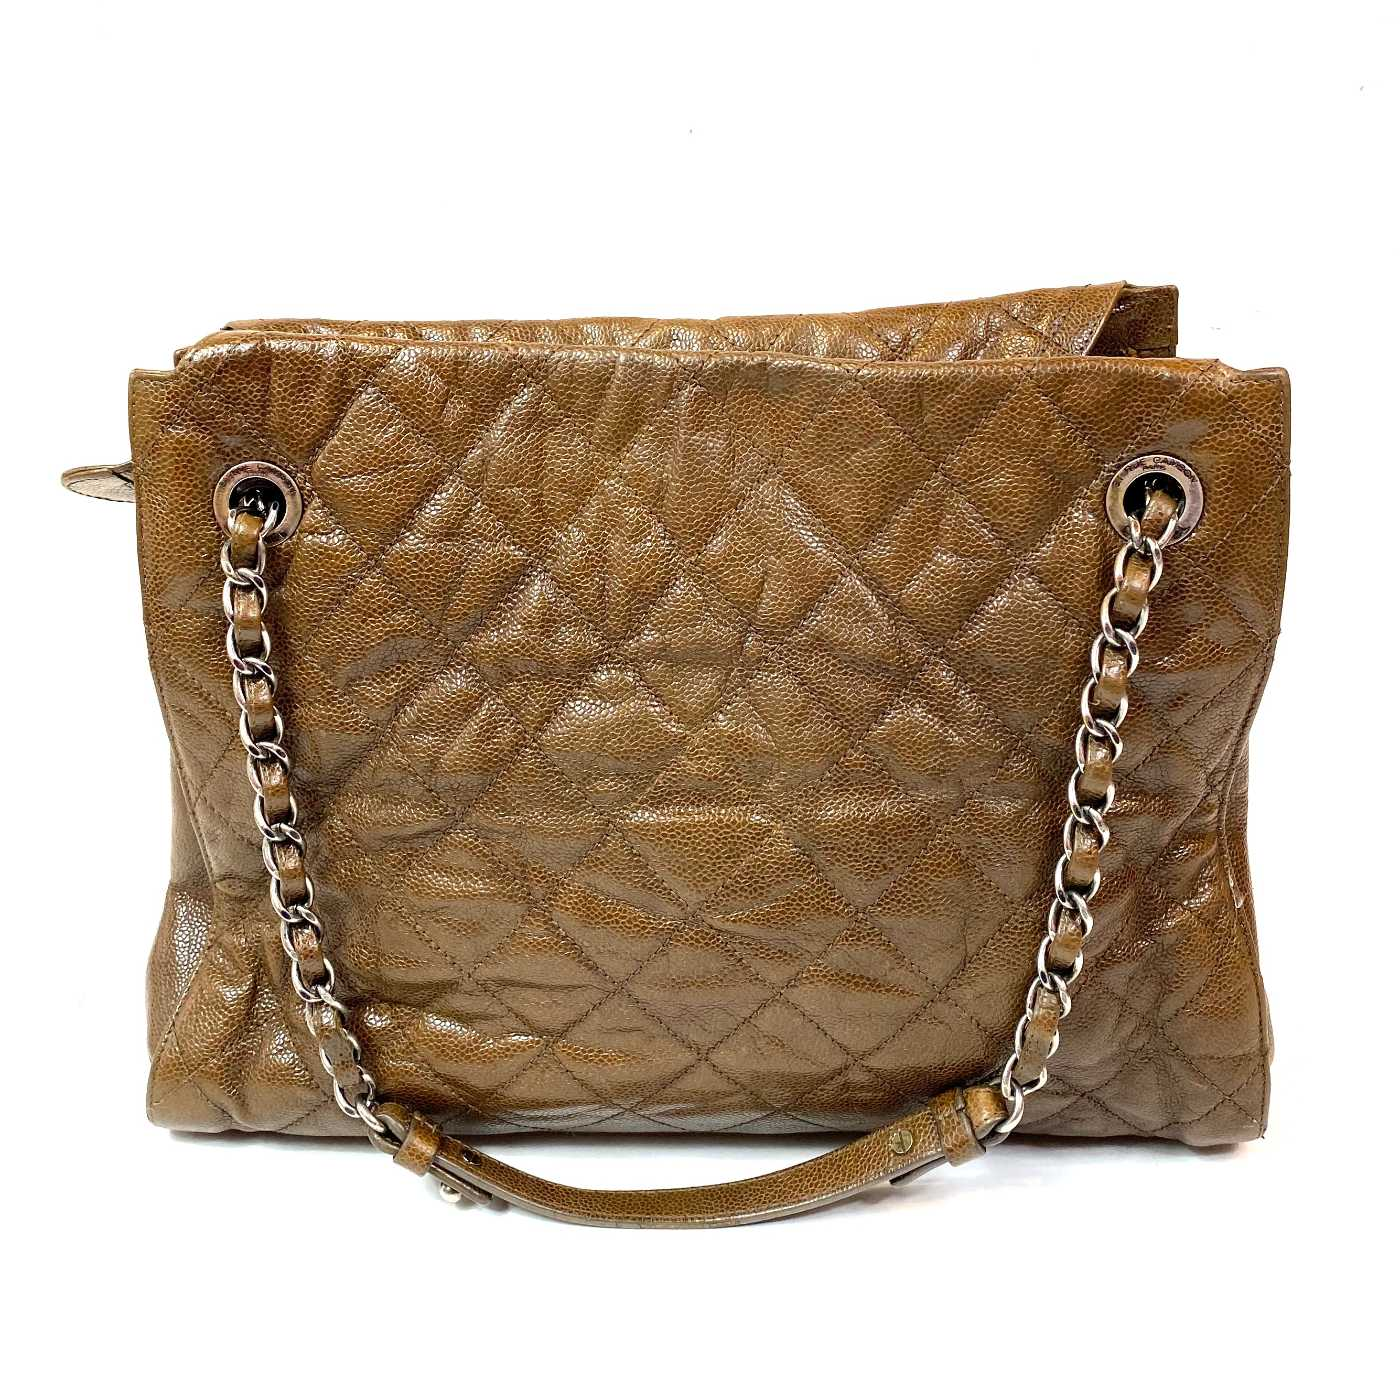 Bolsa Chanel Vintage Quilted Marrom